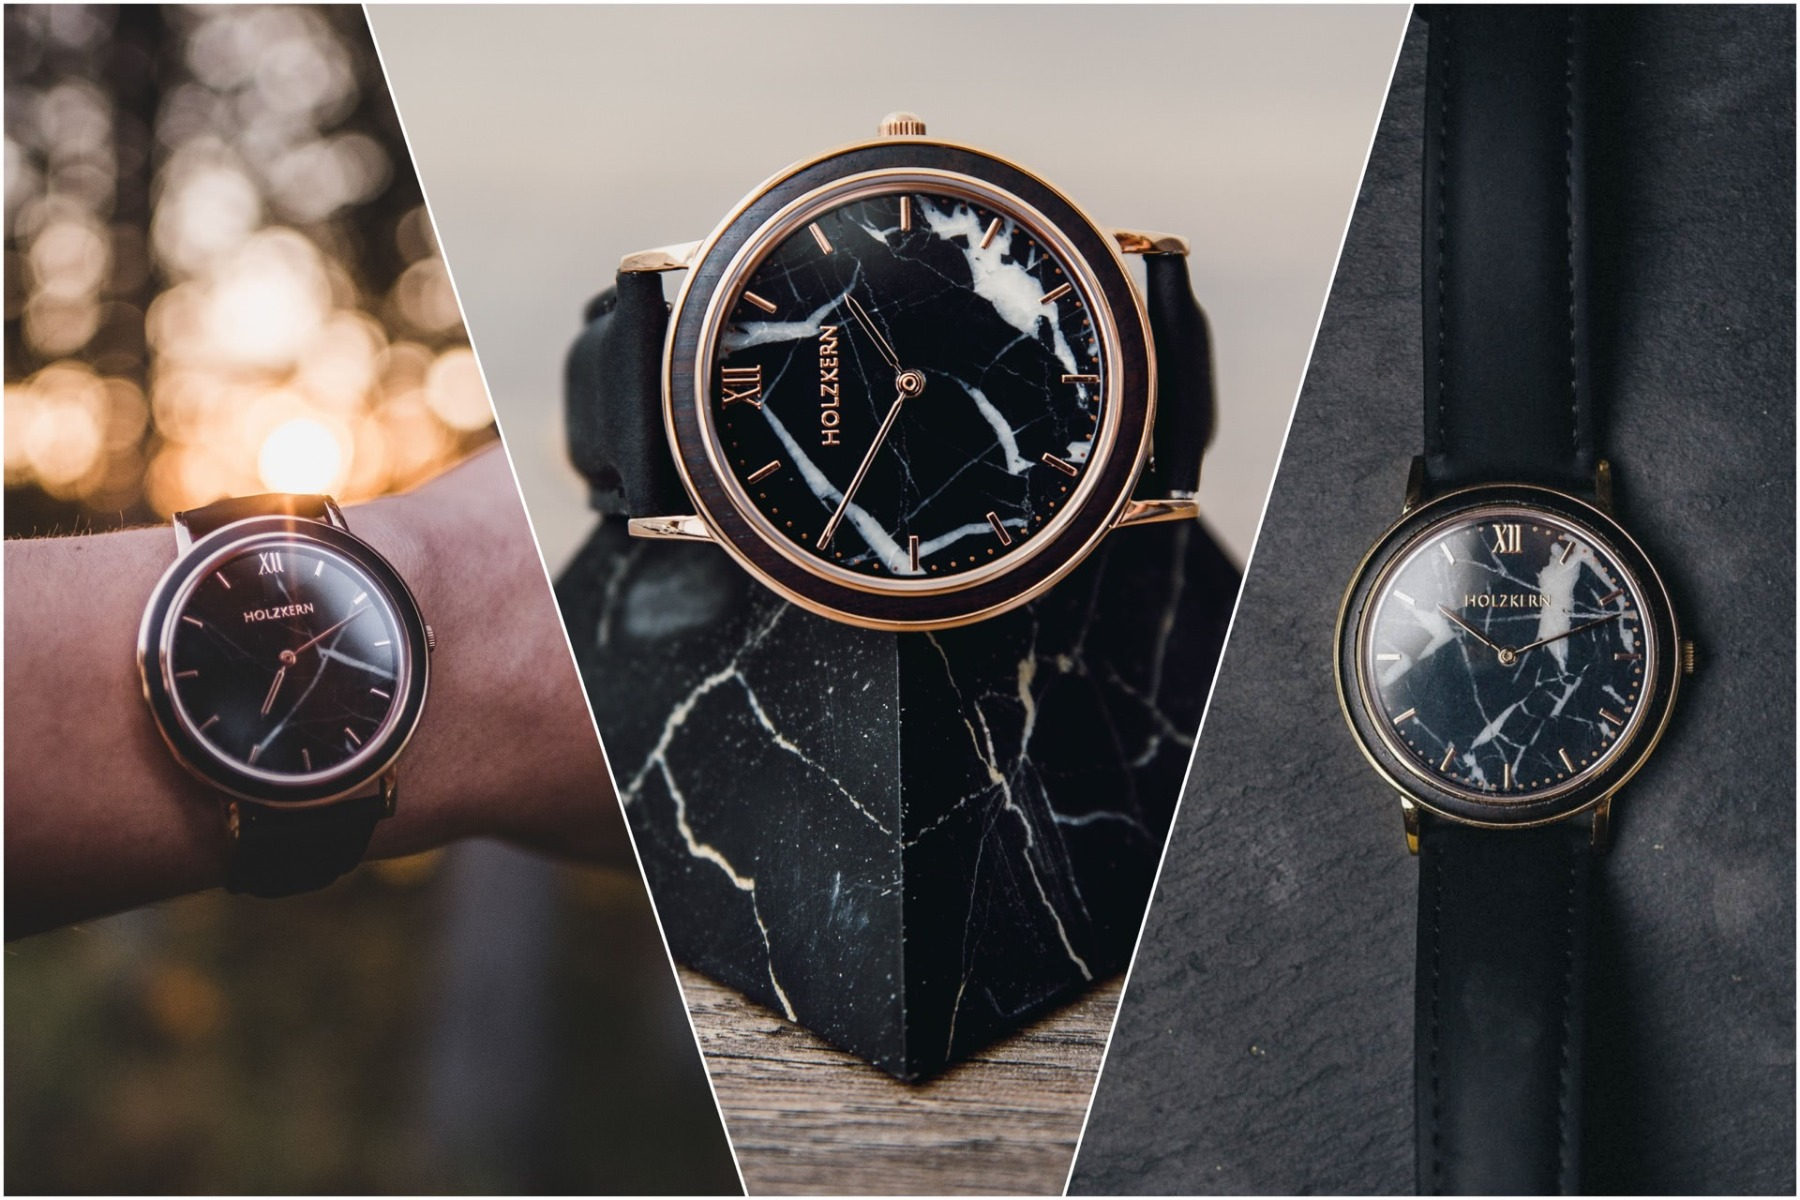 Watches made of Stone